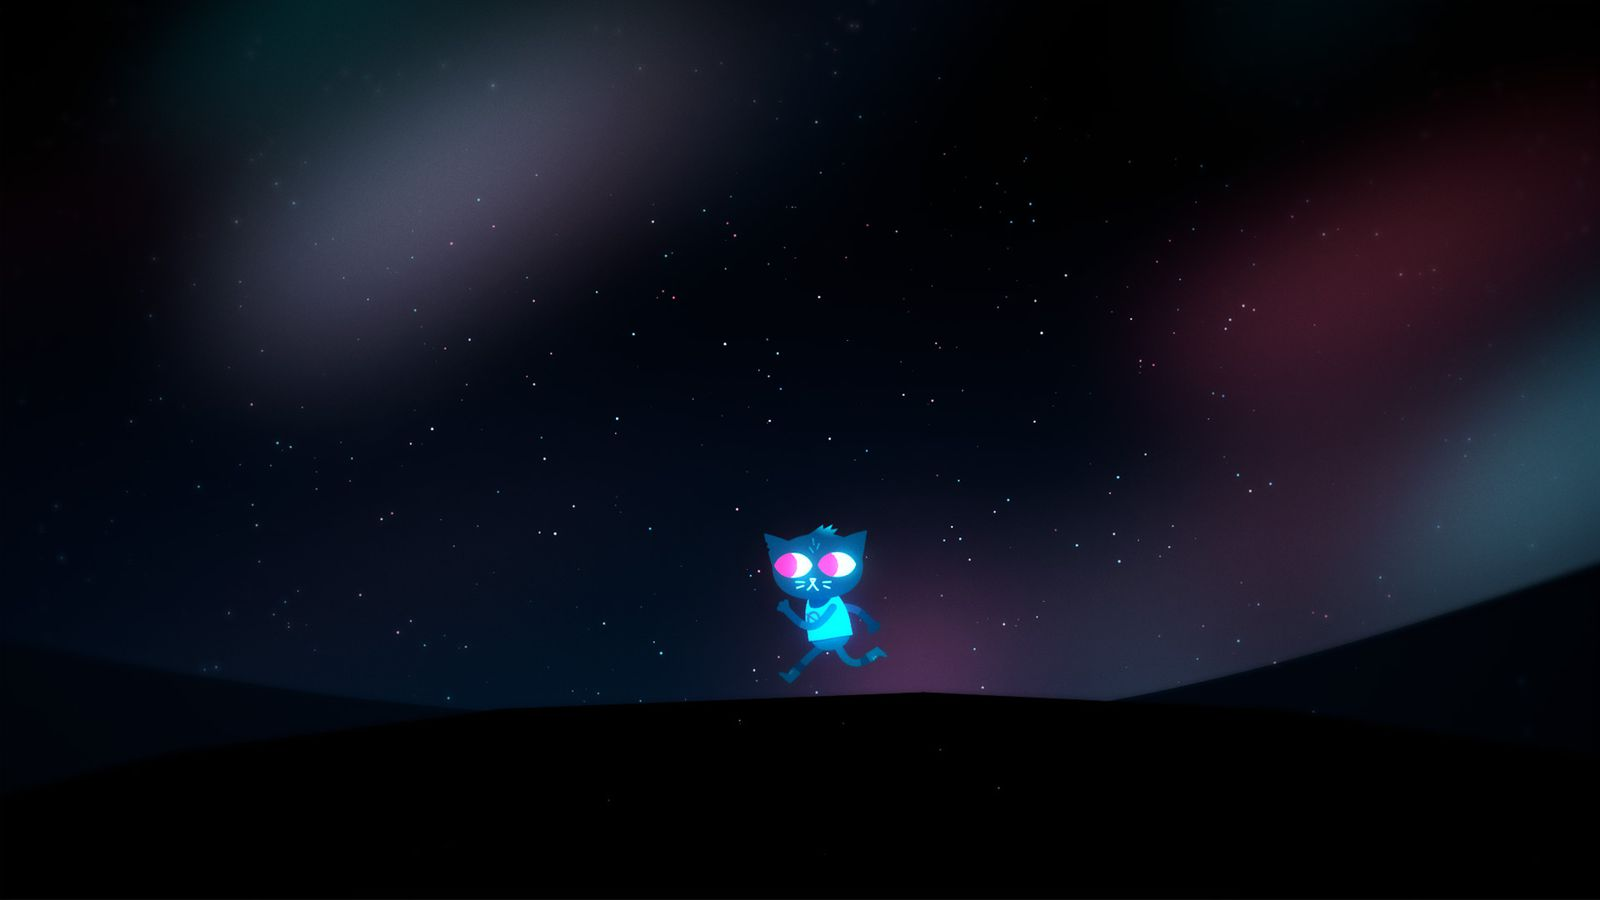 Night Wallpaper No Logo By Ualgreymon On Deviantart: Night In The Woods Review